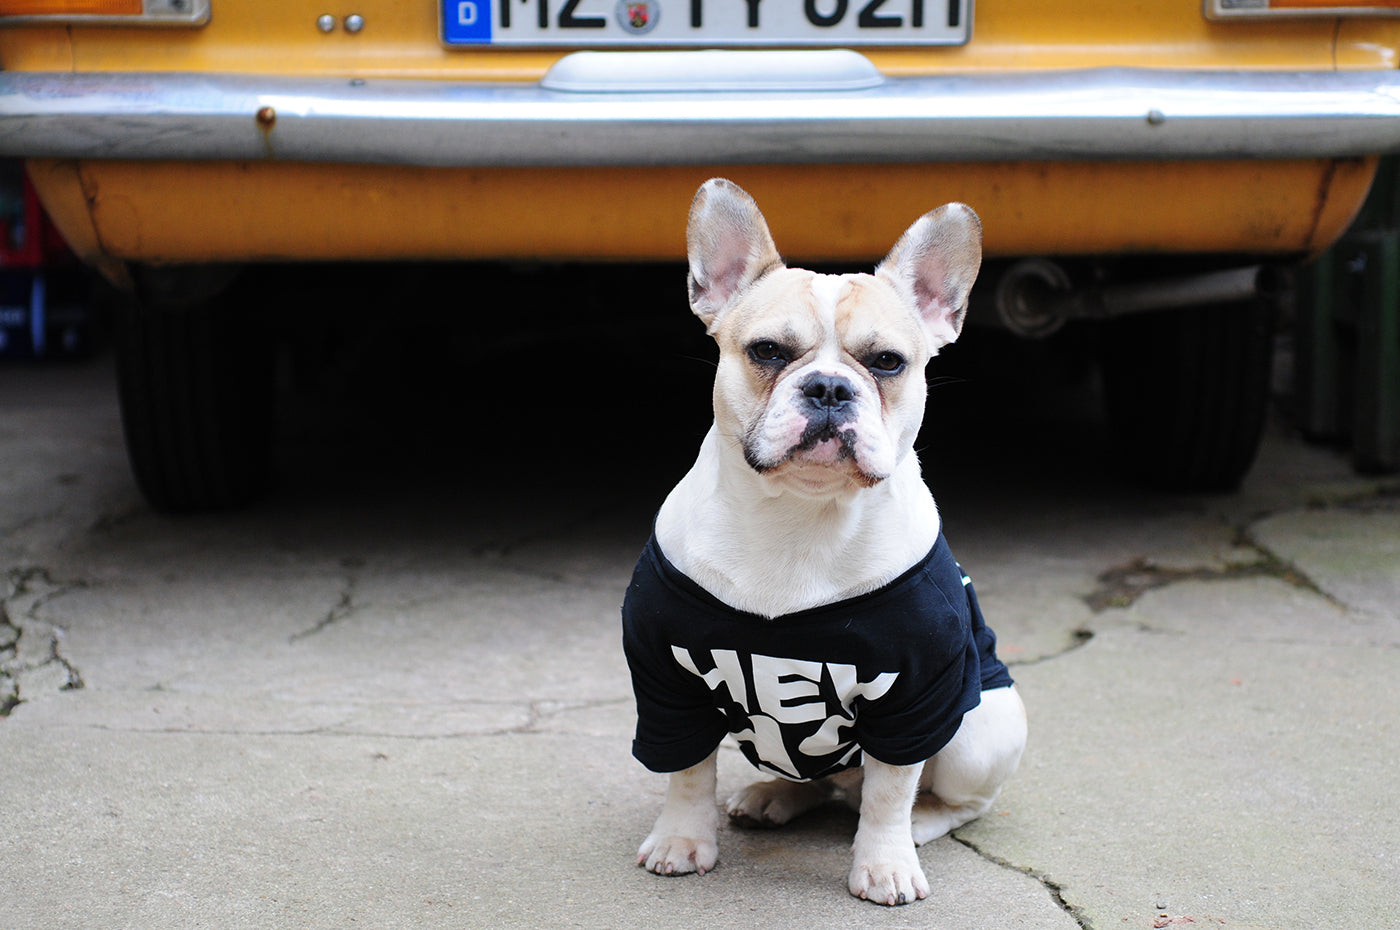 dog with tshirt with 'hey' on it